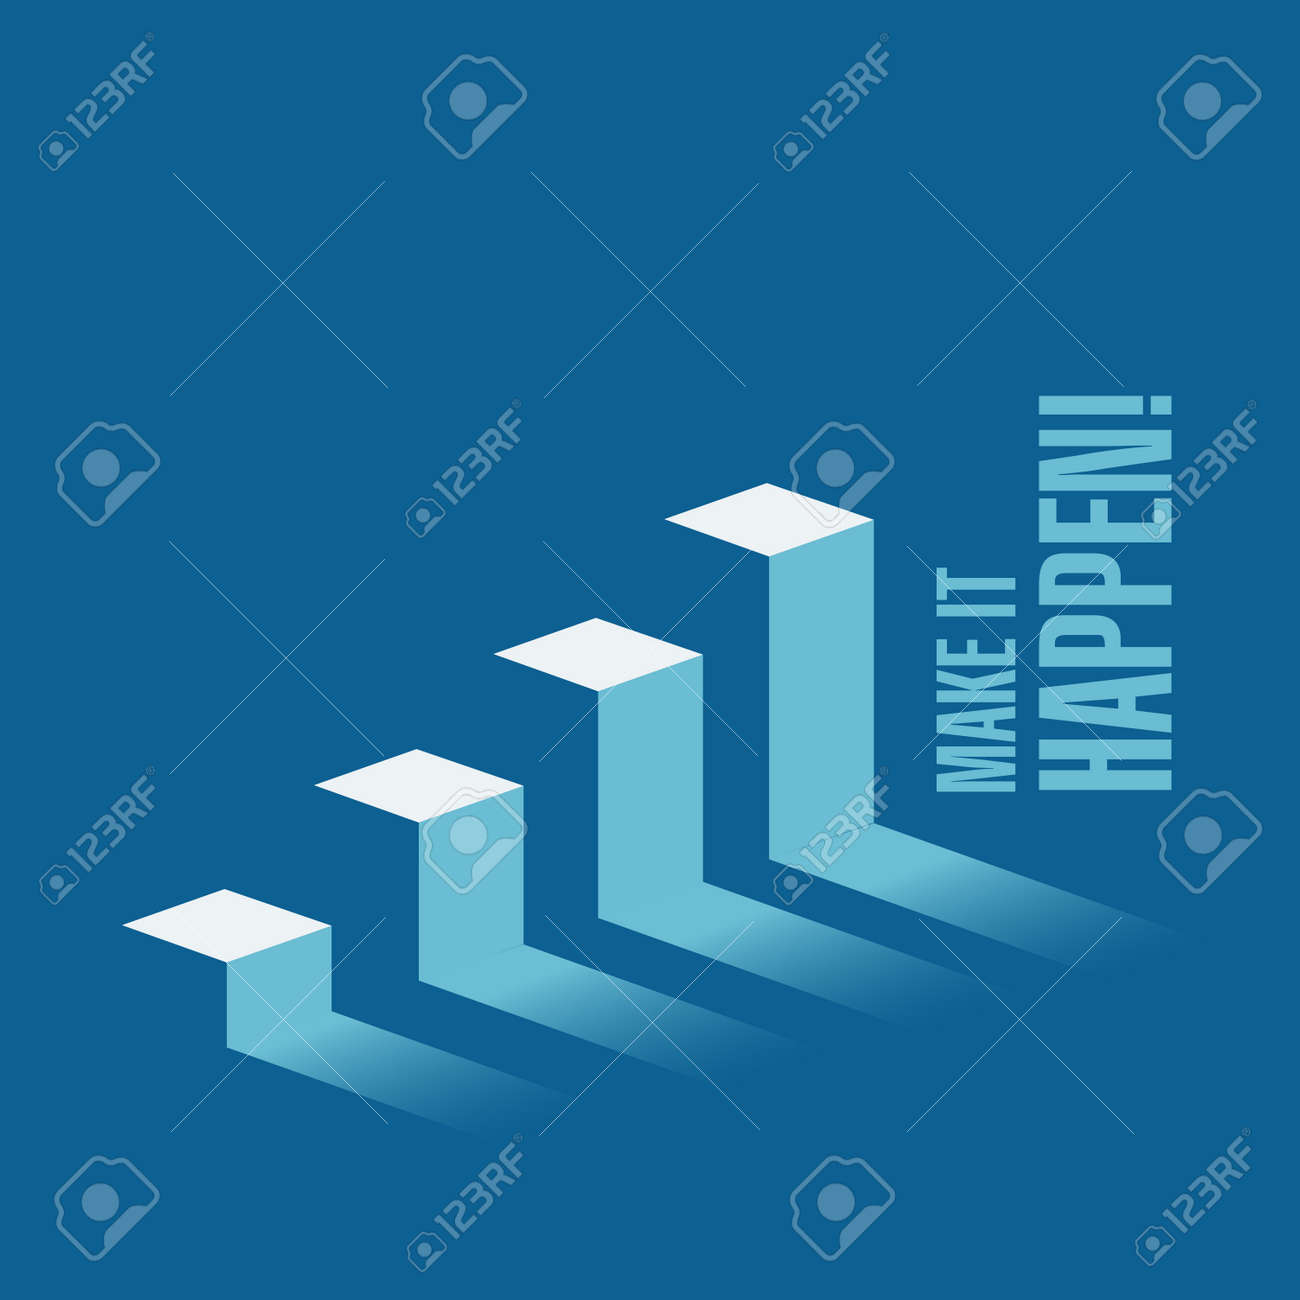 Make it happen business graph message concept isolated over a